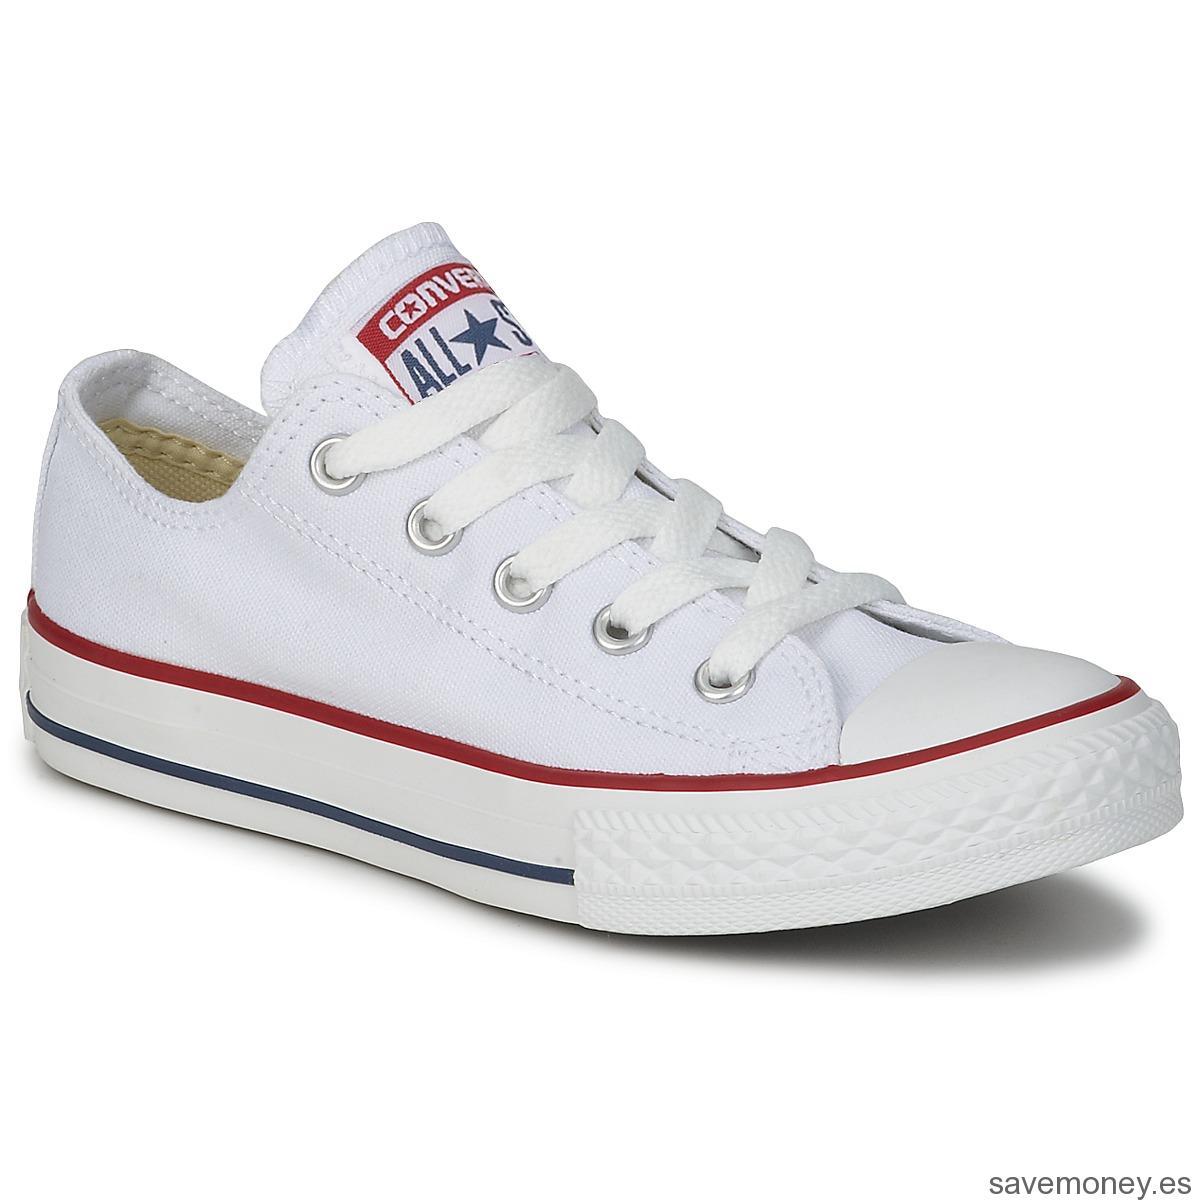 Zapatillas de lona unisex Converse Chuck Taylor All Star Core Ox